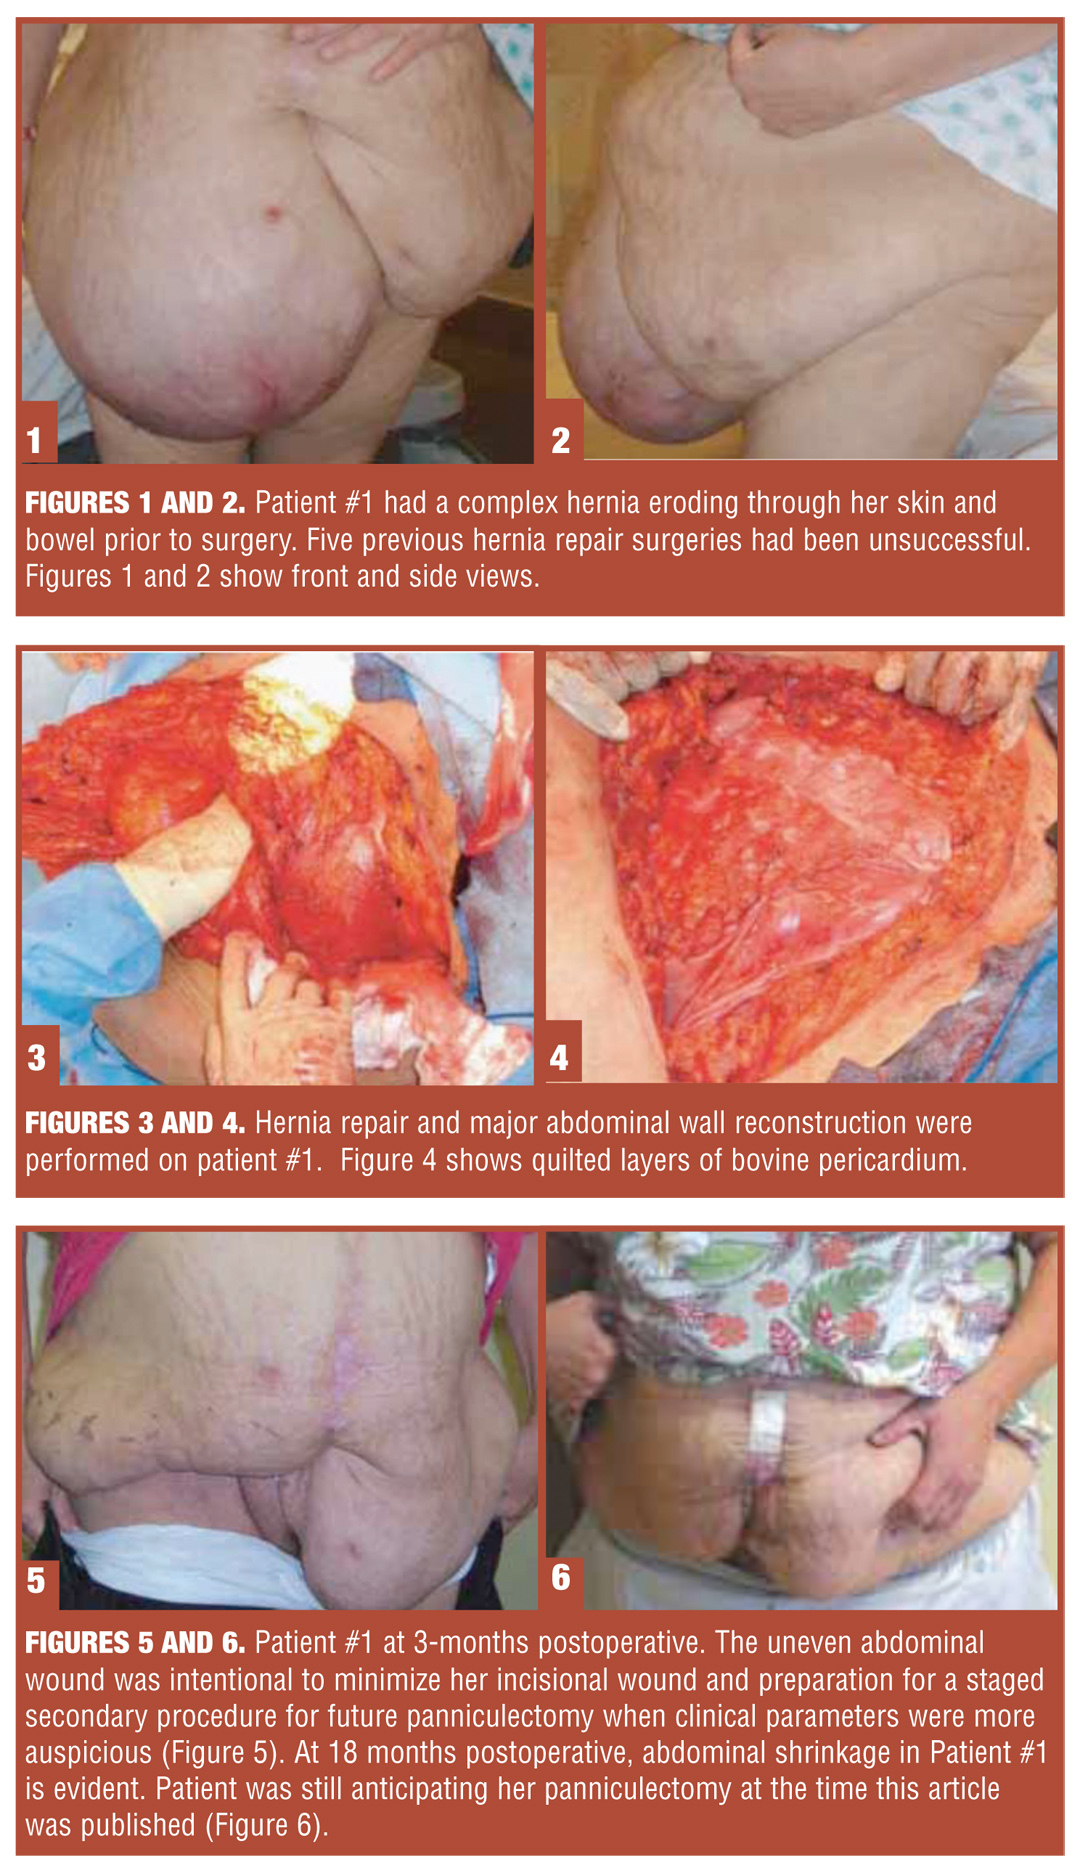 Use of Bovine Pericardium in Complex Hernia Repair